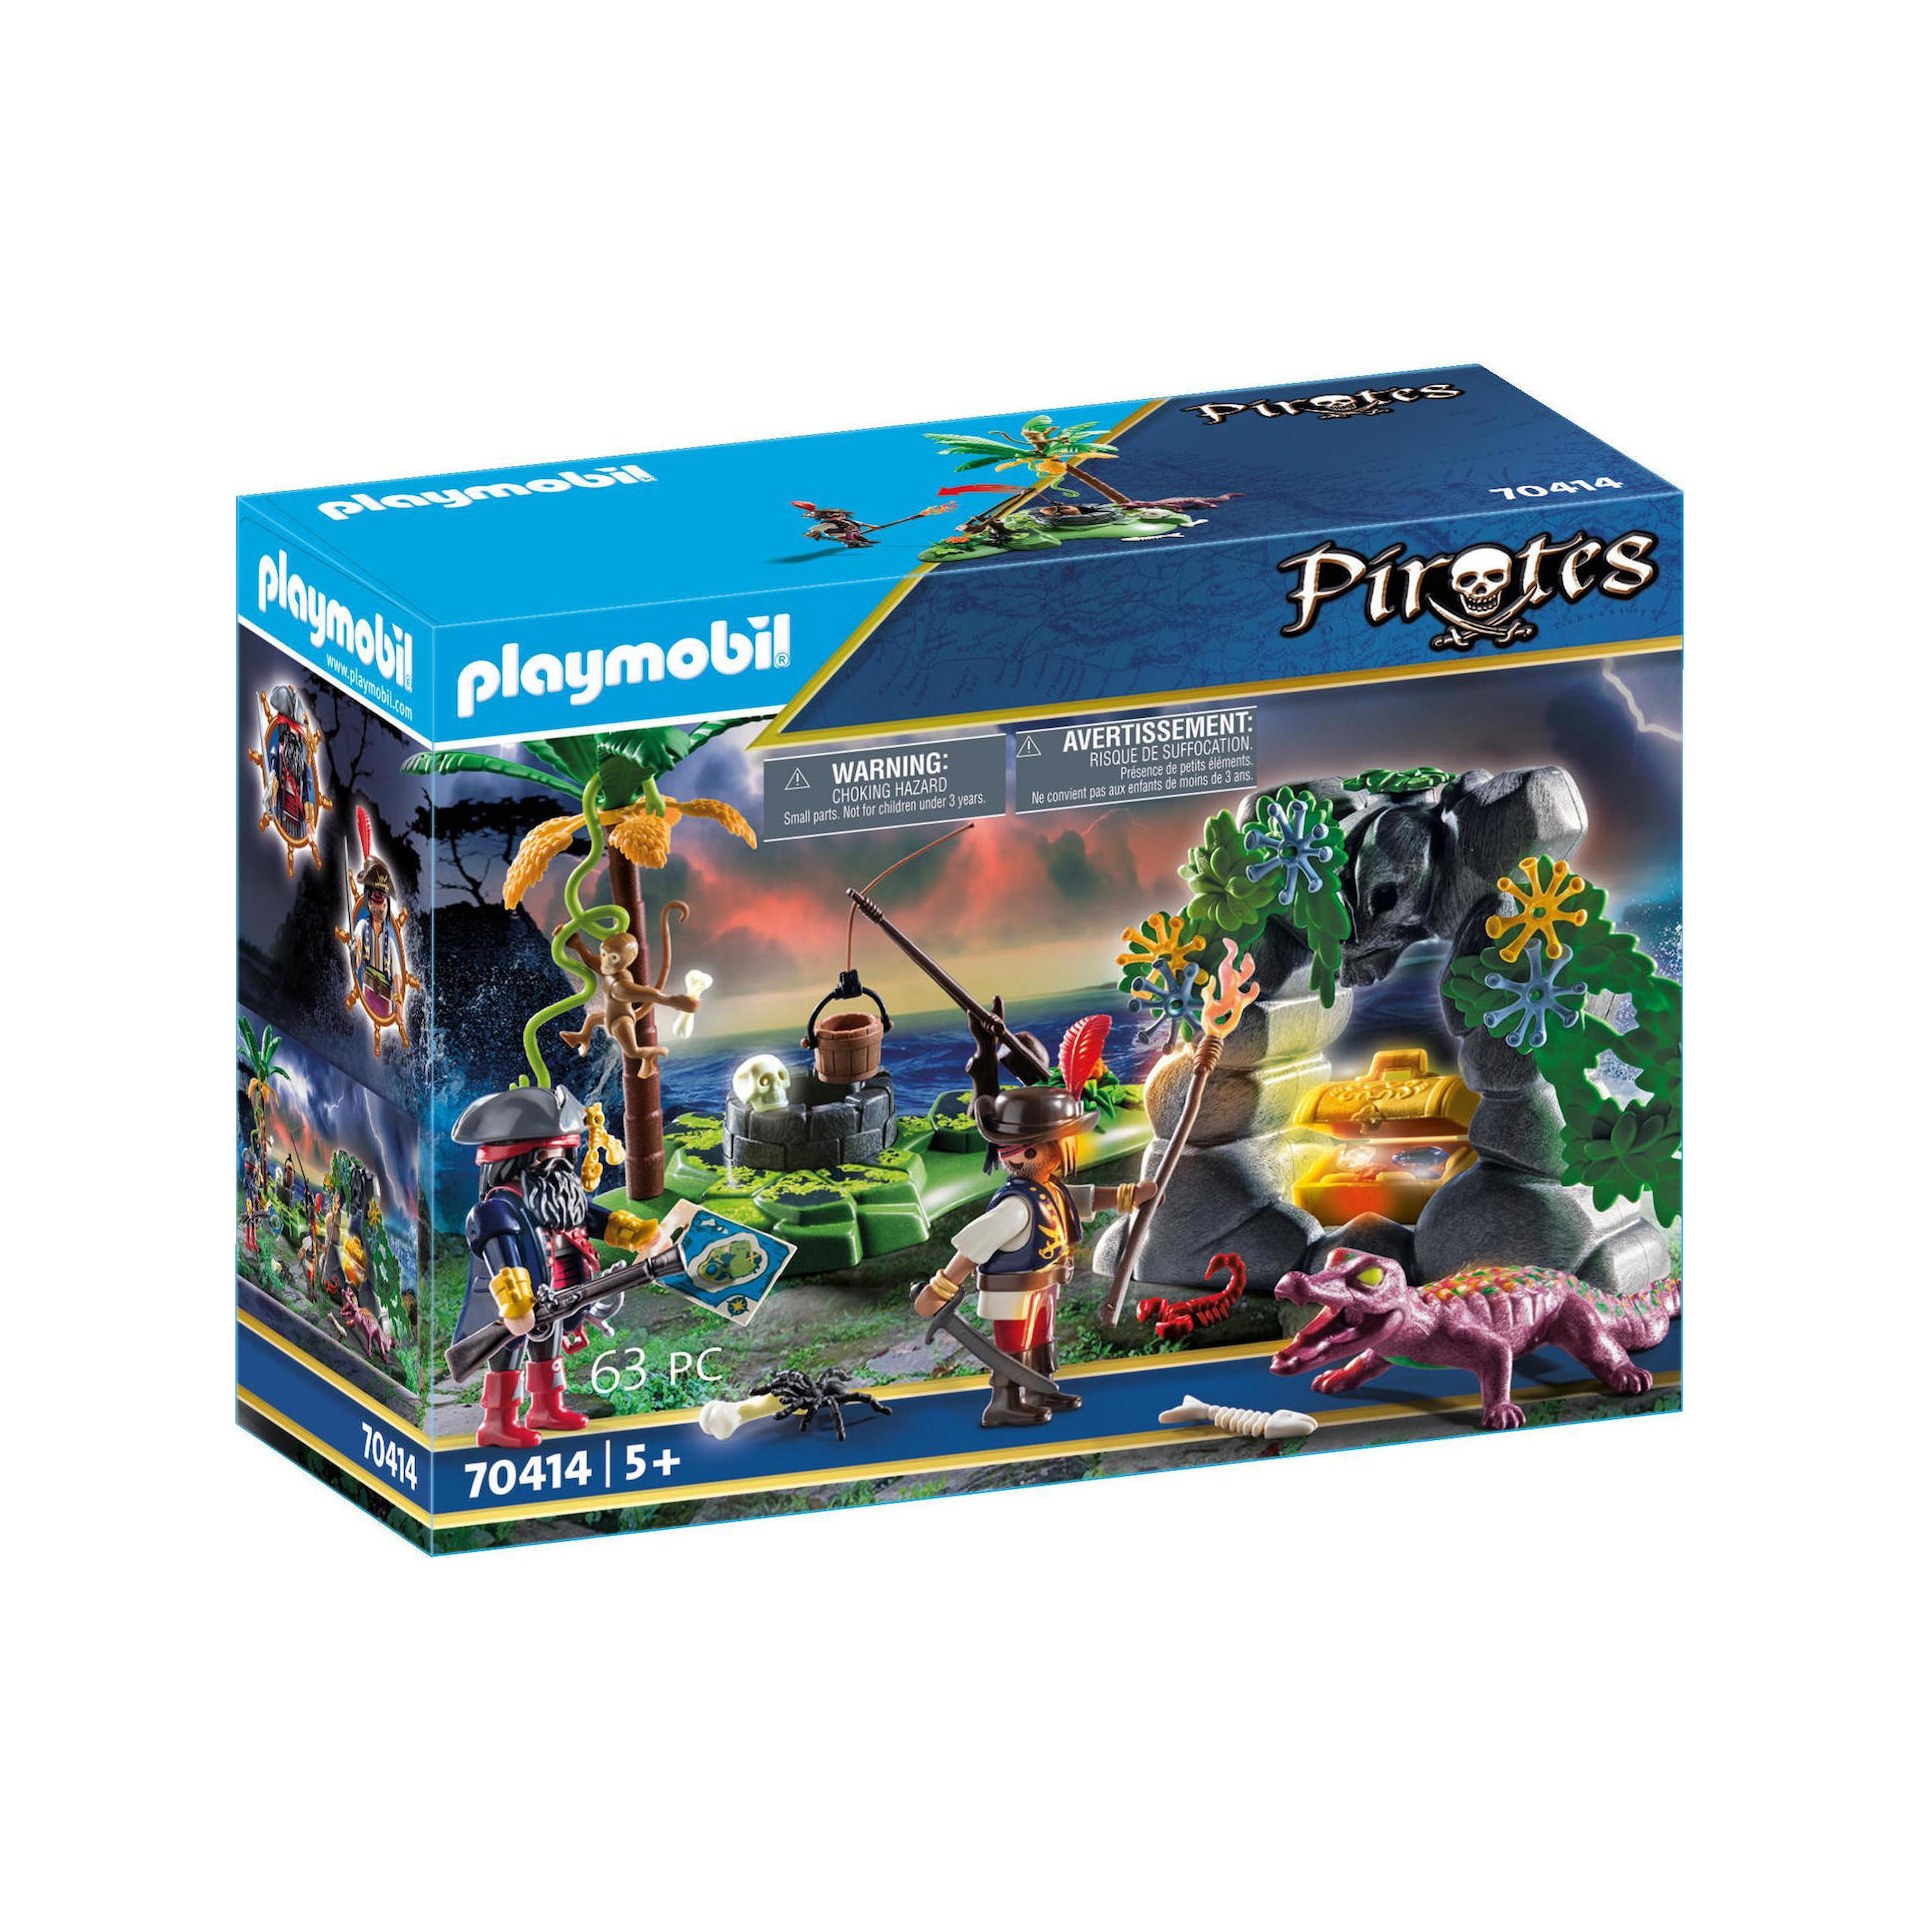 Playmobil Pirates: Pirate Hideaway 70414